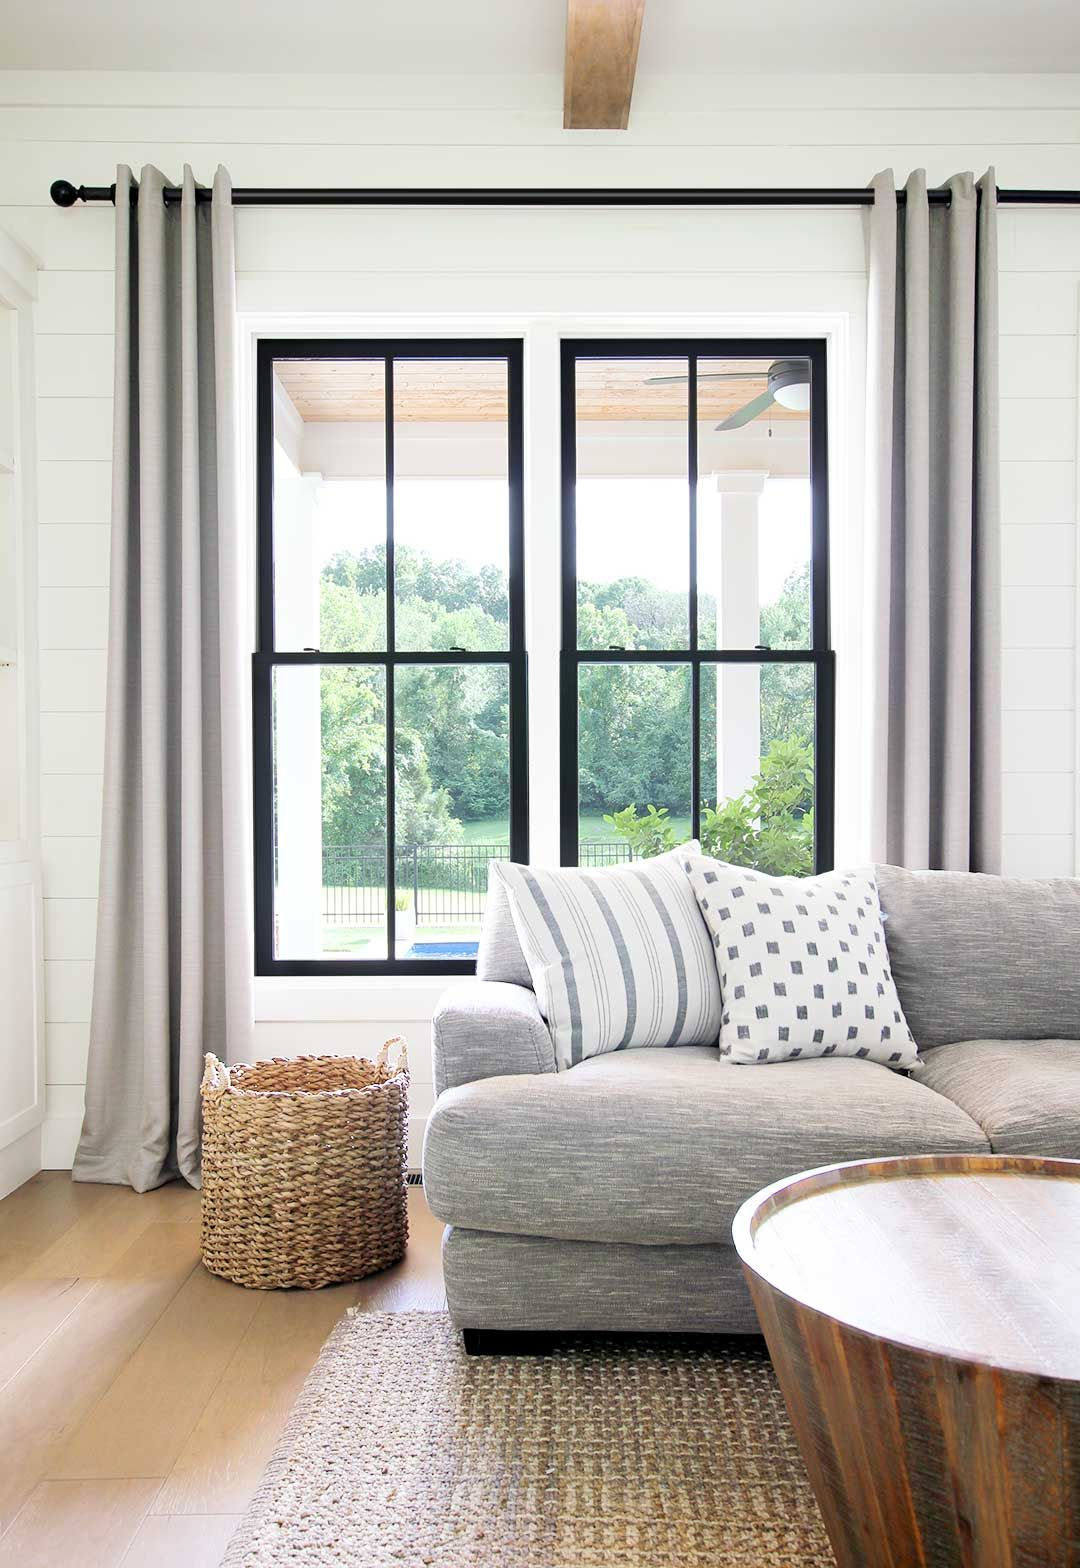 Black Vs White Windows Black Windows Can Give Your Home A Modern Look While Still Remaining Timeless Windows White Windows Interior Windows House Interior